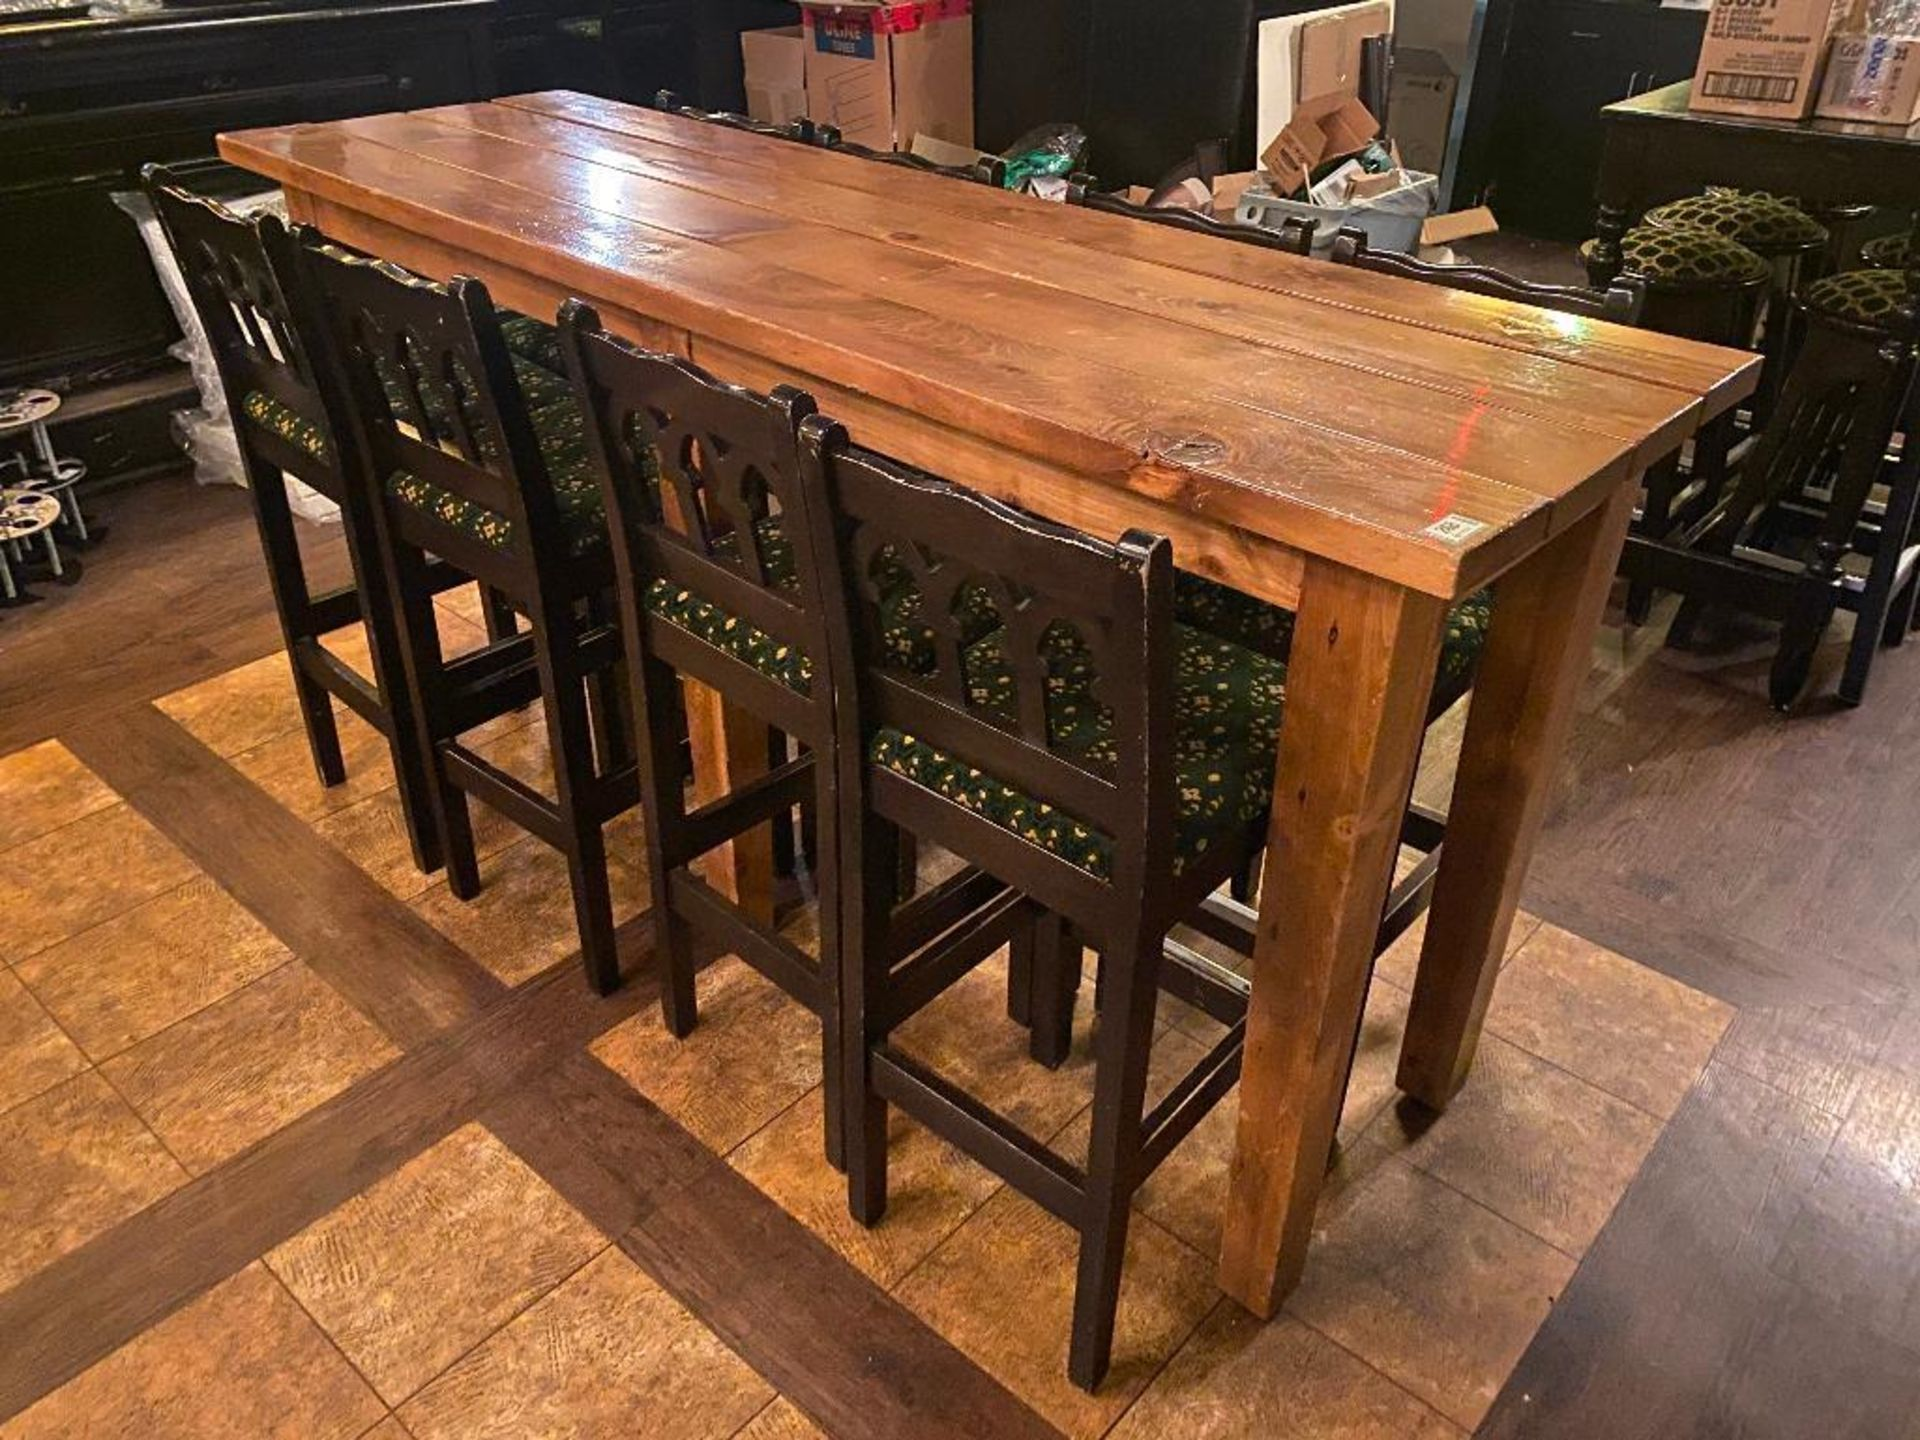 7' WOOD BAR HEIGHT TABLE WITH 8 BAR HEIGHT CHAIRS